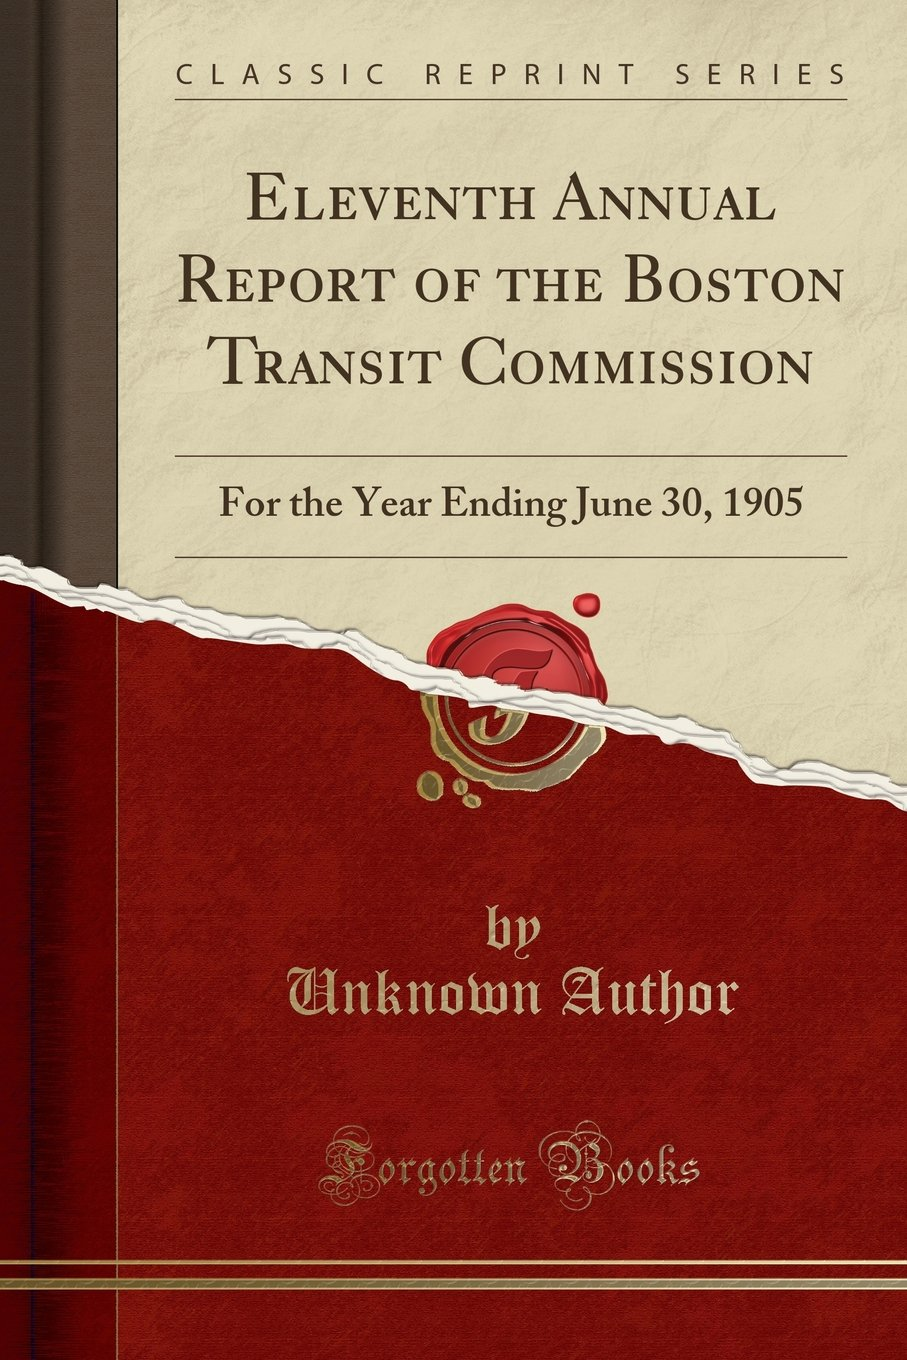 Eleventh Annual Report of the Boston Transit Commission: For the Year Ending June 30, 1905 (Classic Reprint) PDF